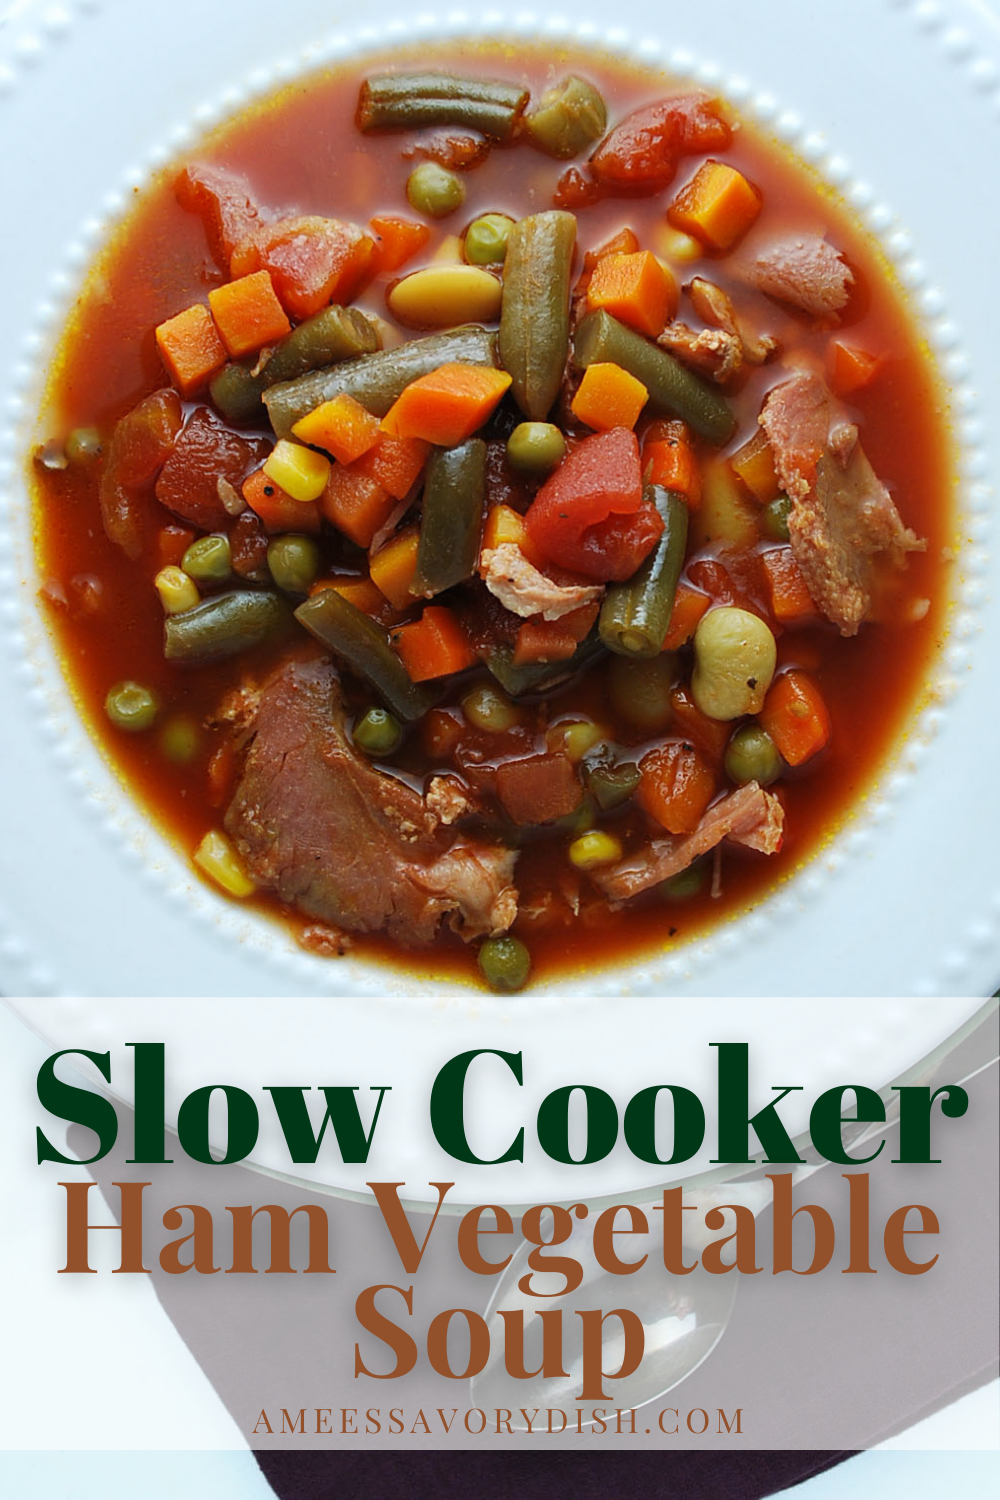 A healthier and easy recipe for homemade slow cooker southern ham vegetable soup made with leftover ham bone with meat and mixed frozen vegetables. via @Ameessavorydish